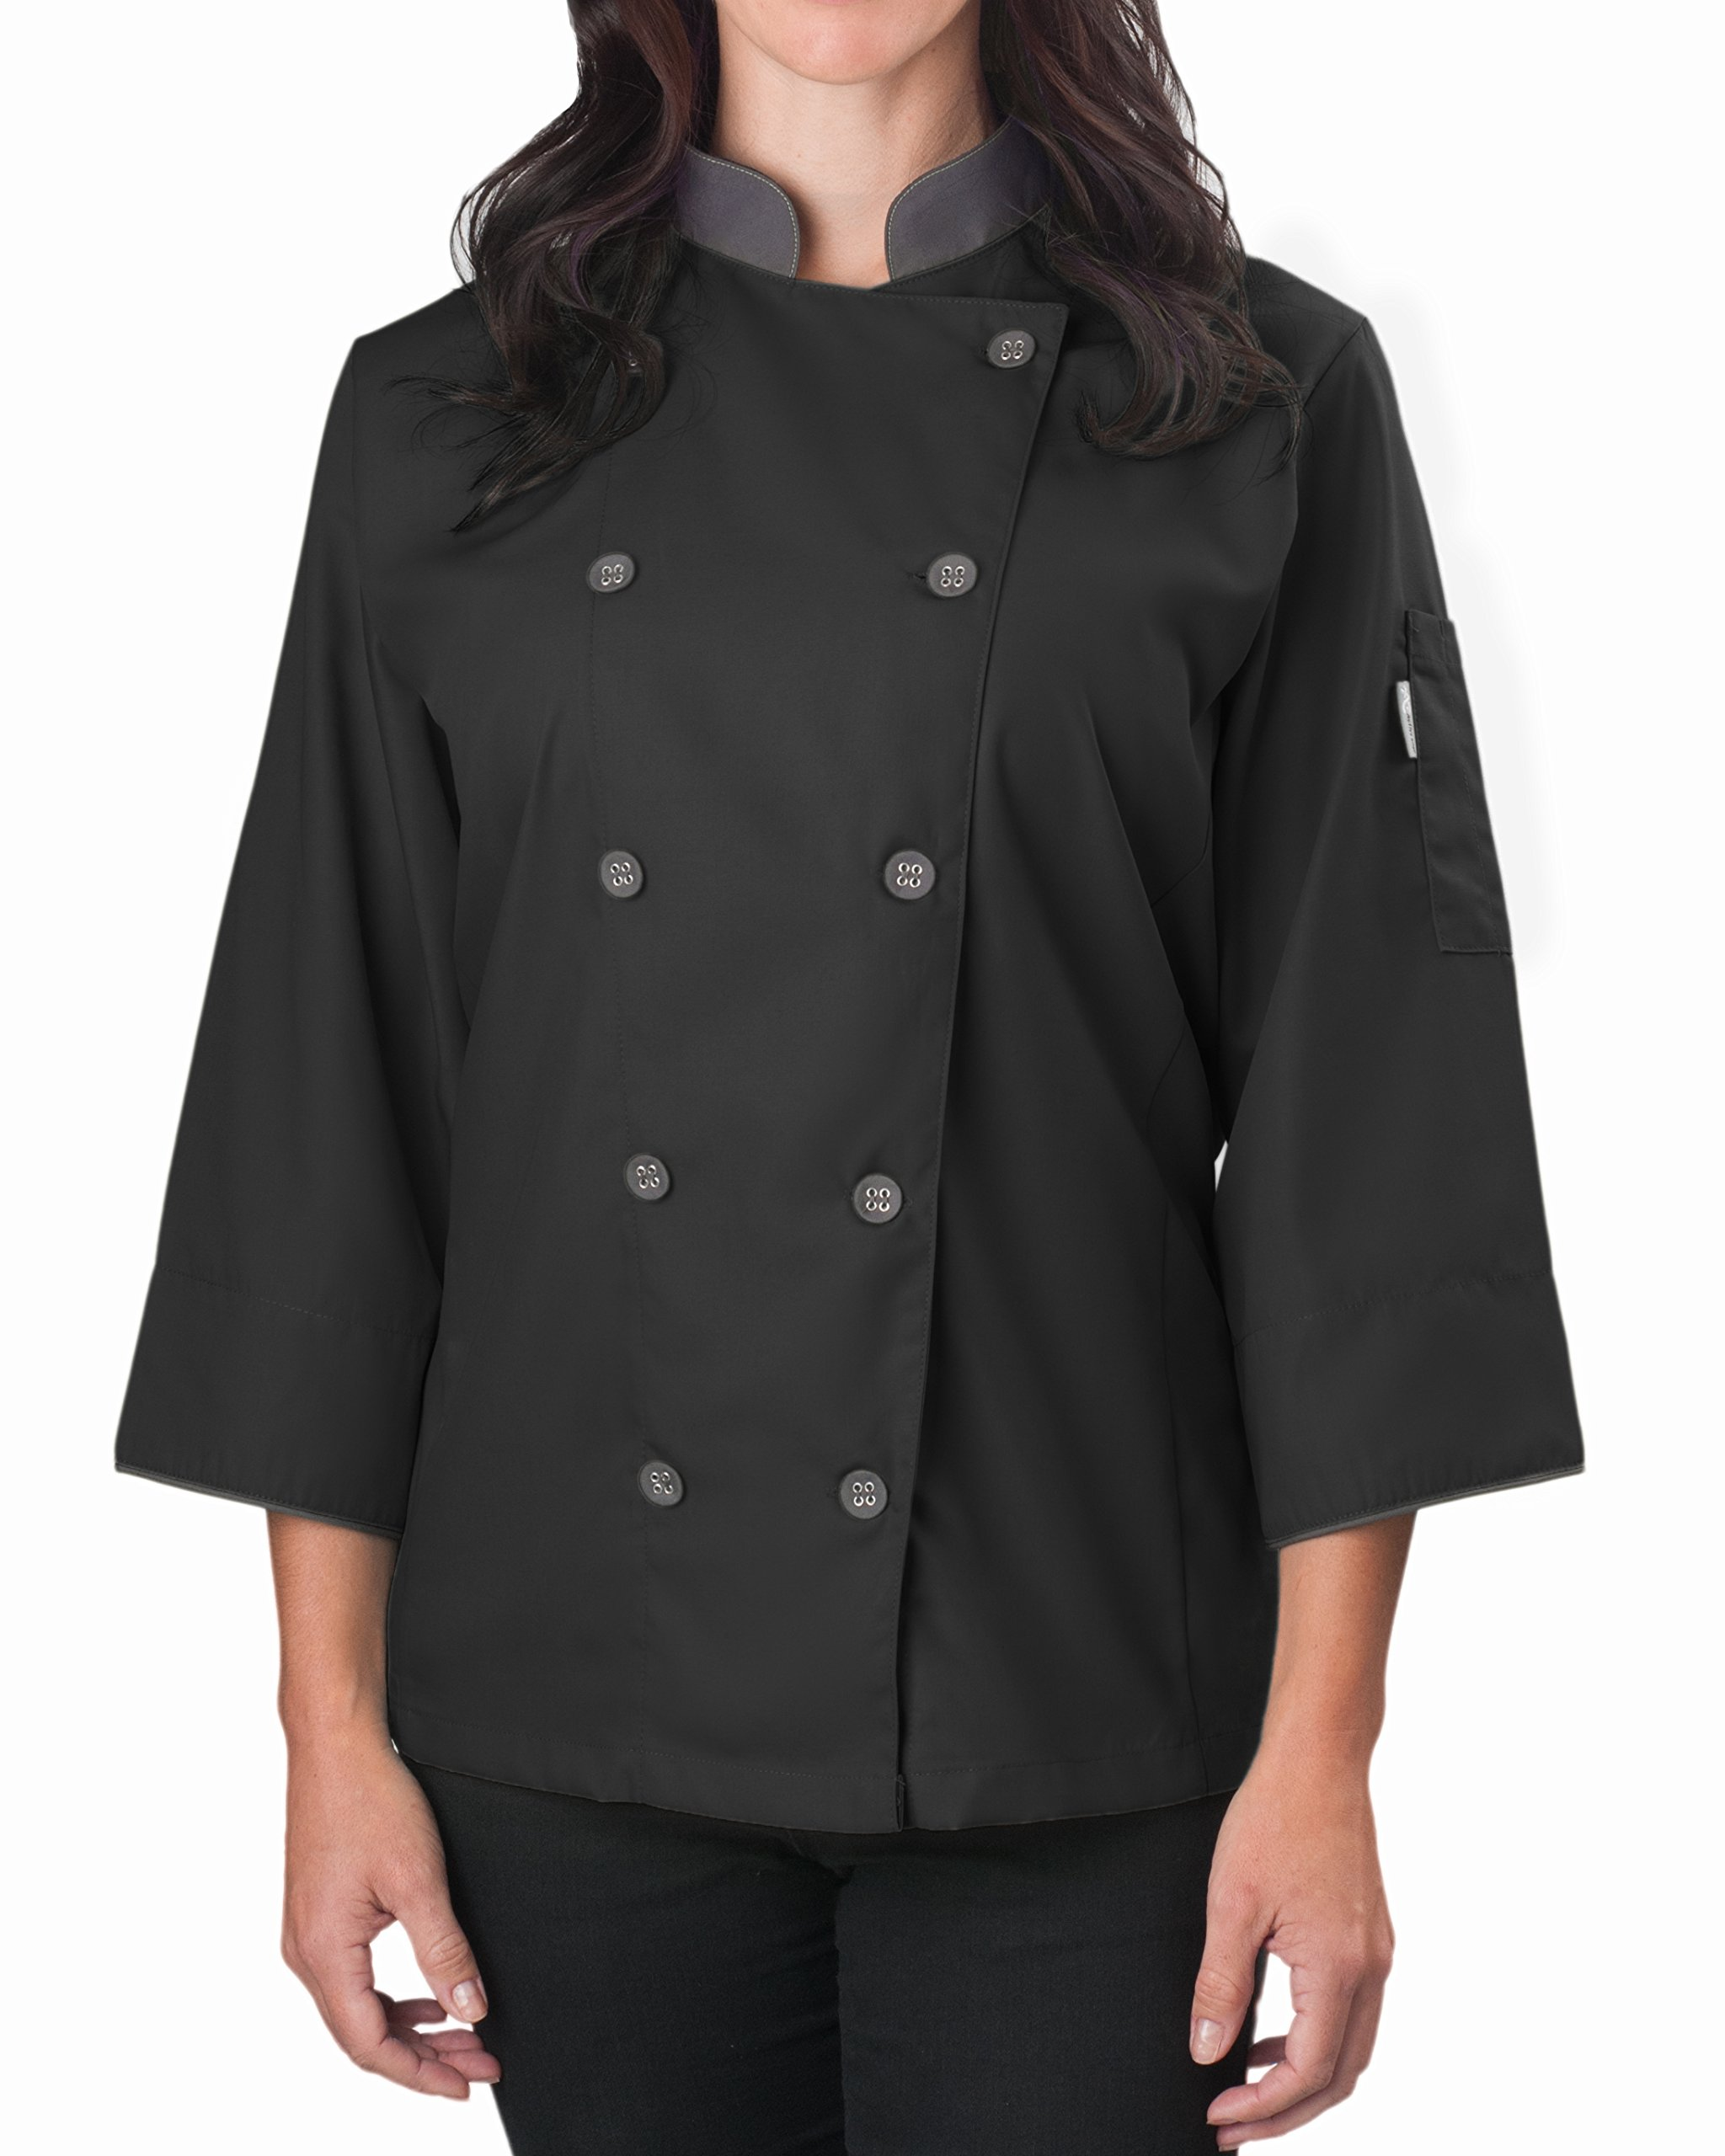 Women's ¾ Sleeve Active Chef Coat, Black with Slate Accent, XL by KNG